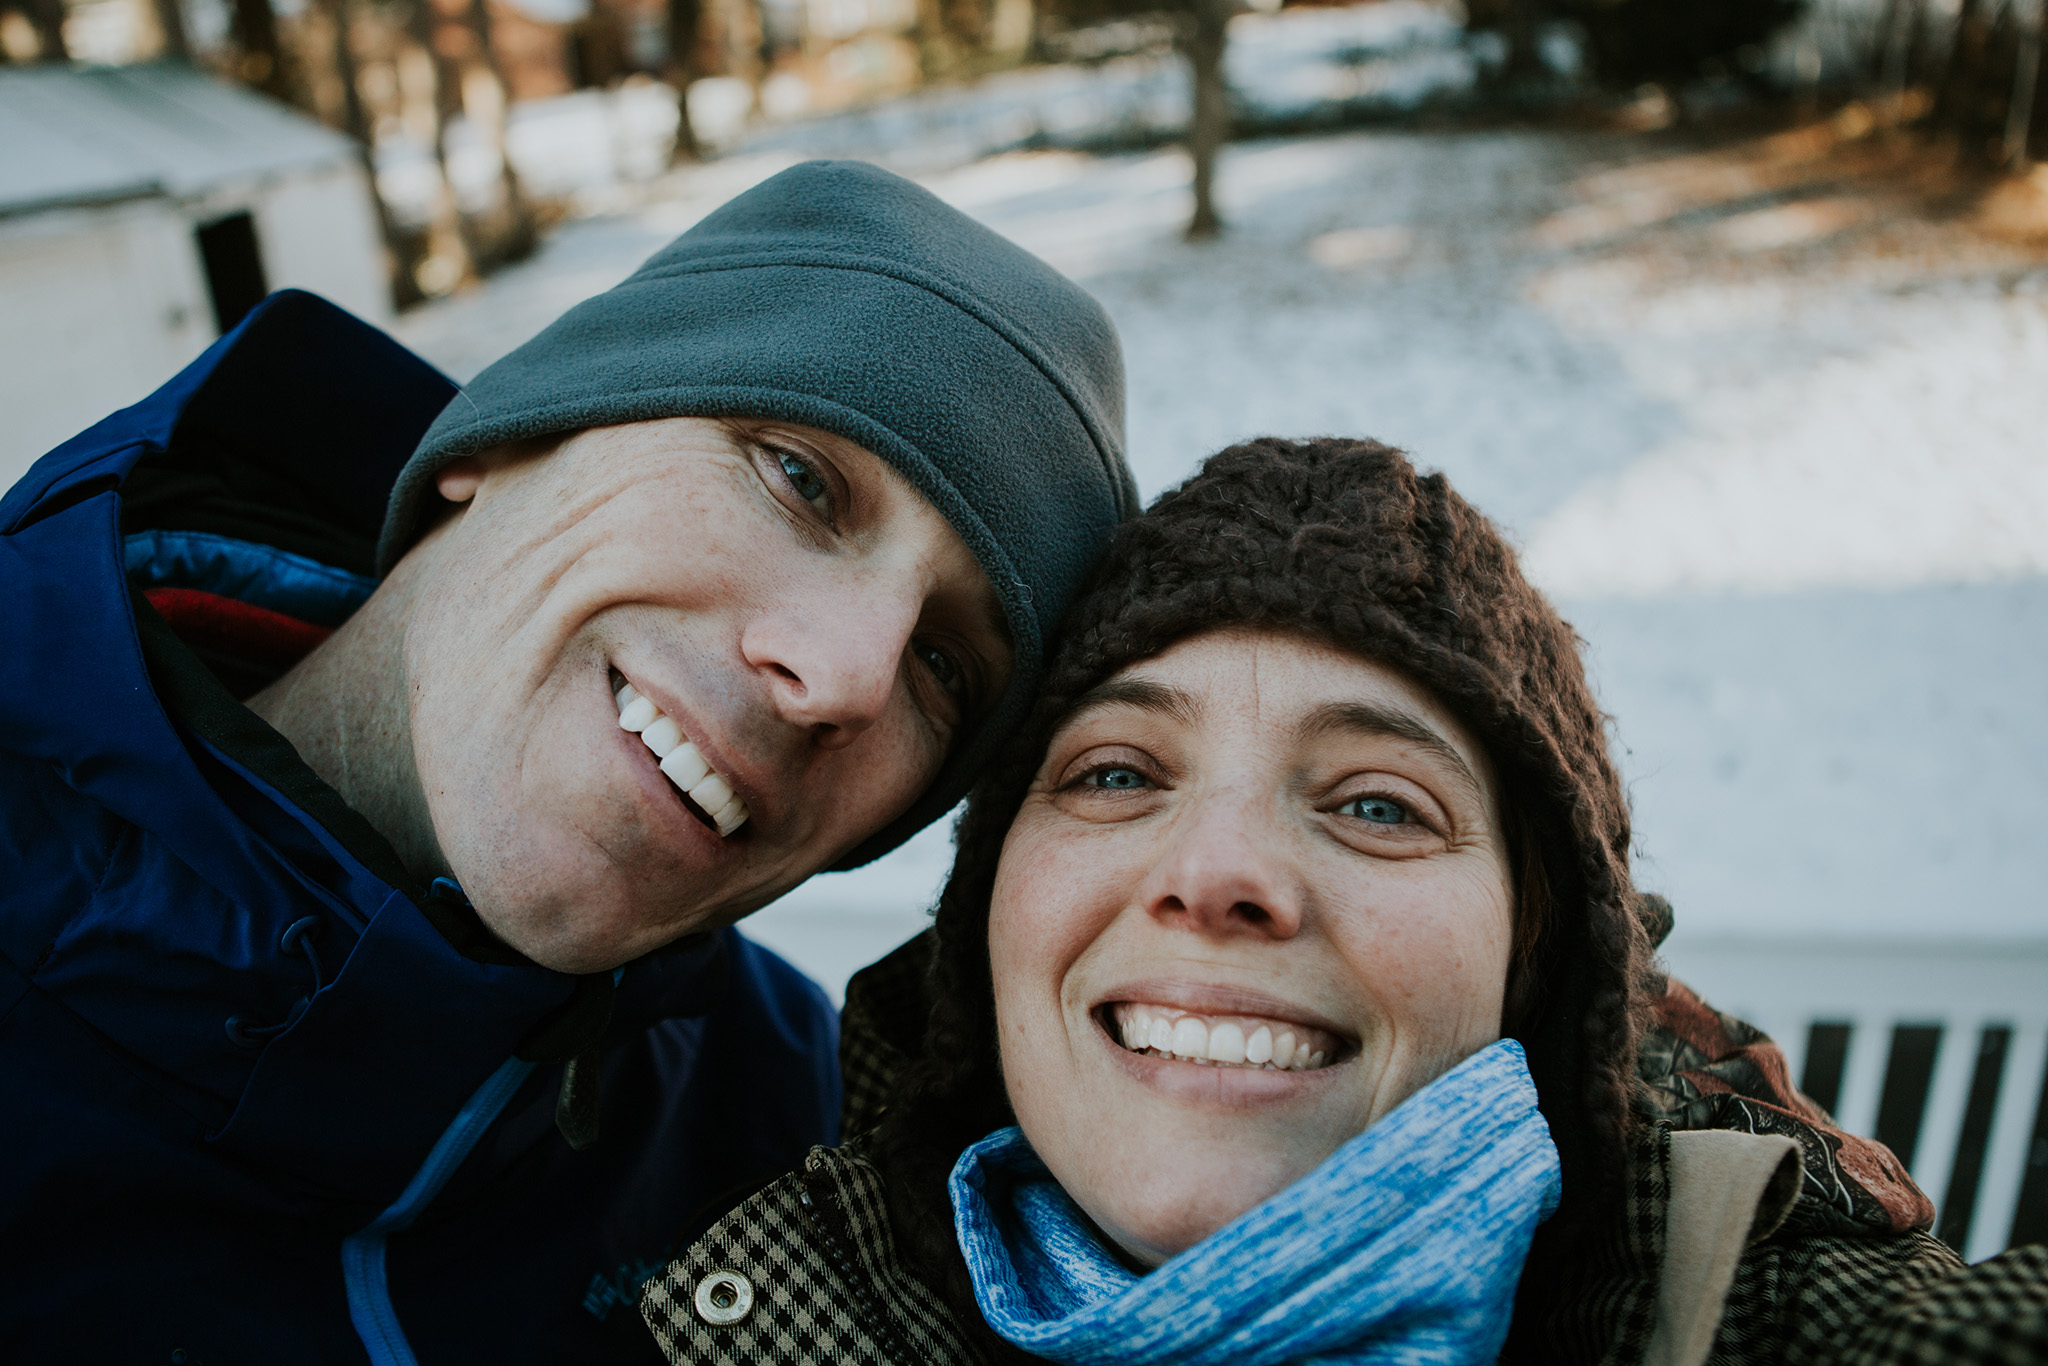 January 1: New Year's selfie after a frigid walk with my favorite.